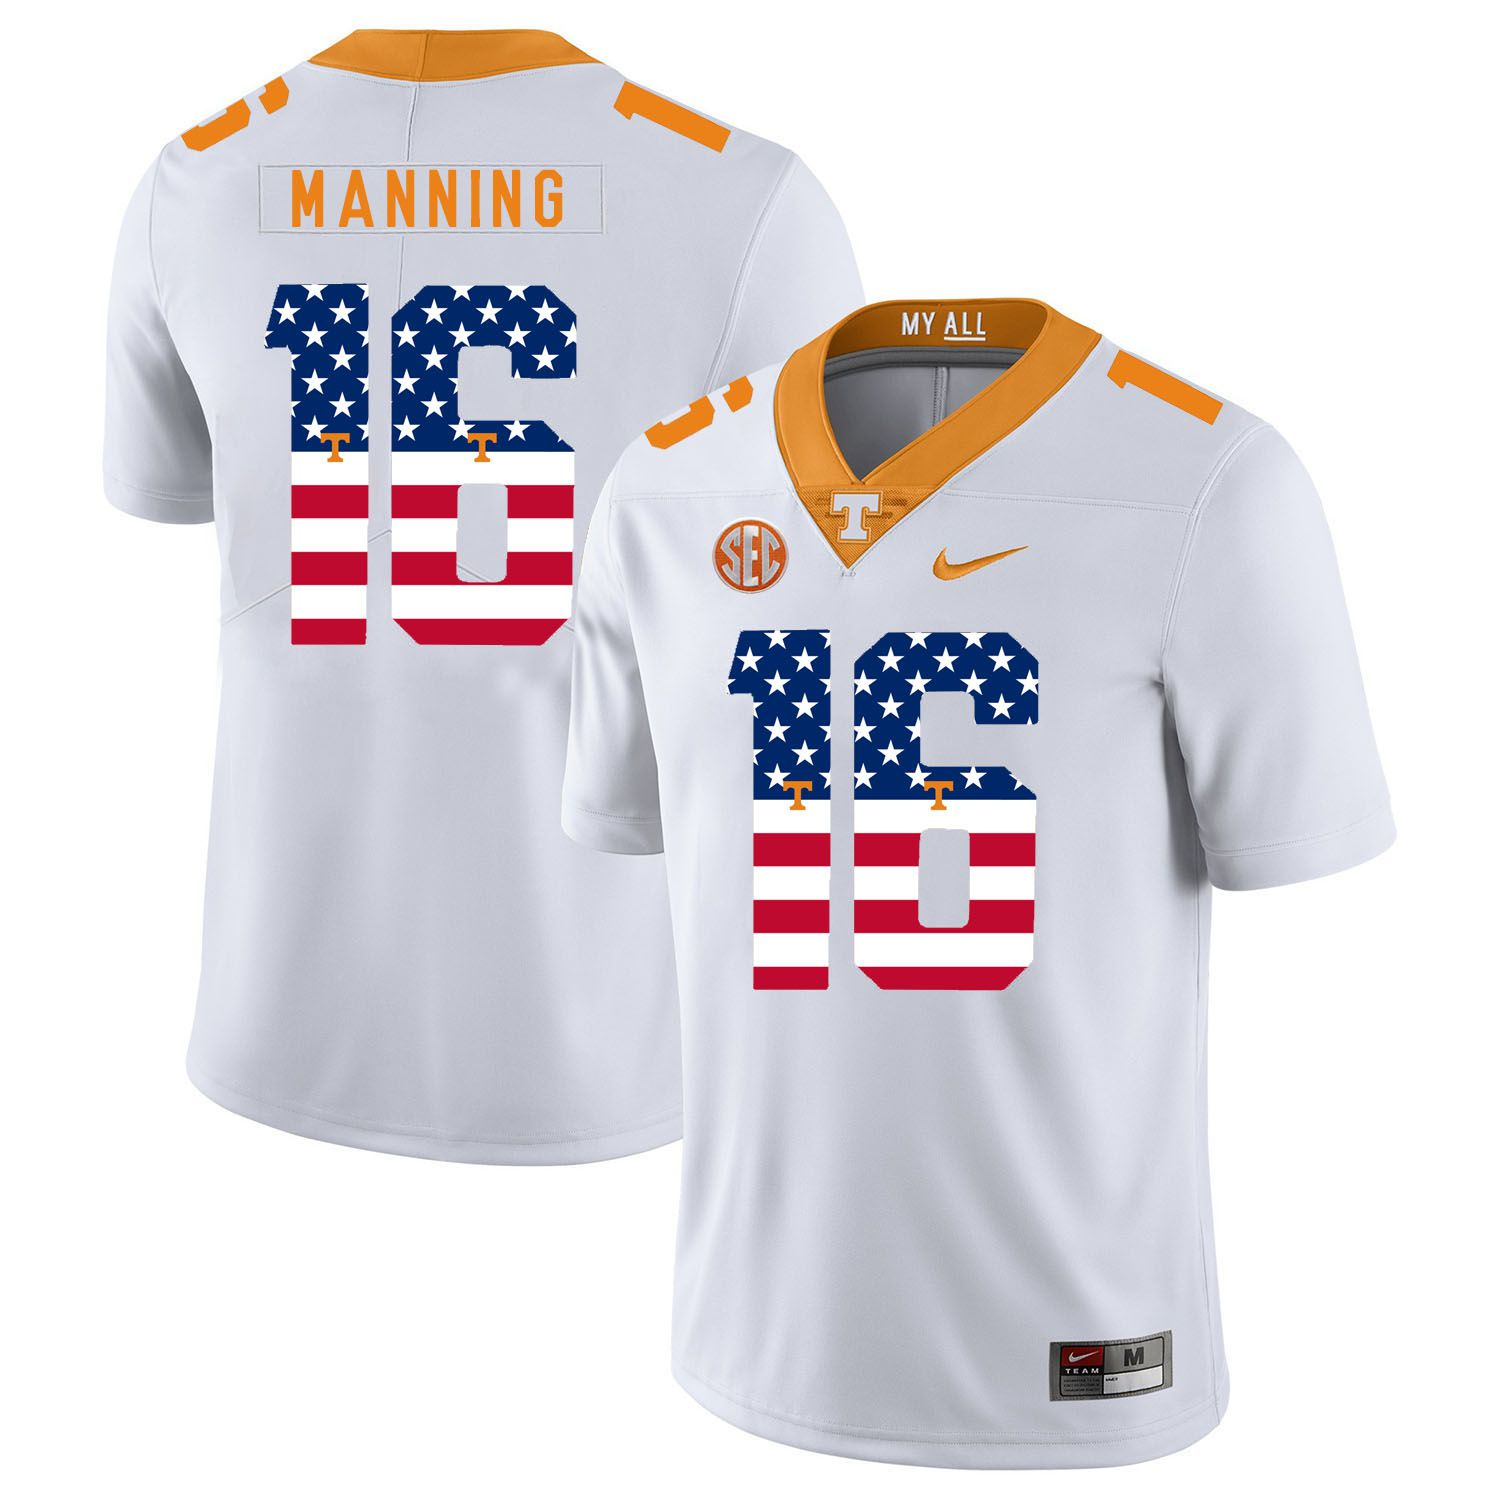 Men Tennessee Volunteers 16 Manning White Flag Customized NCAA Jerseys